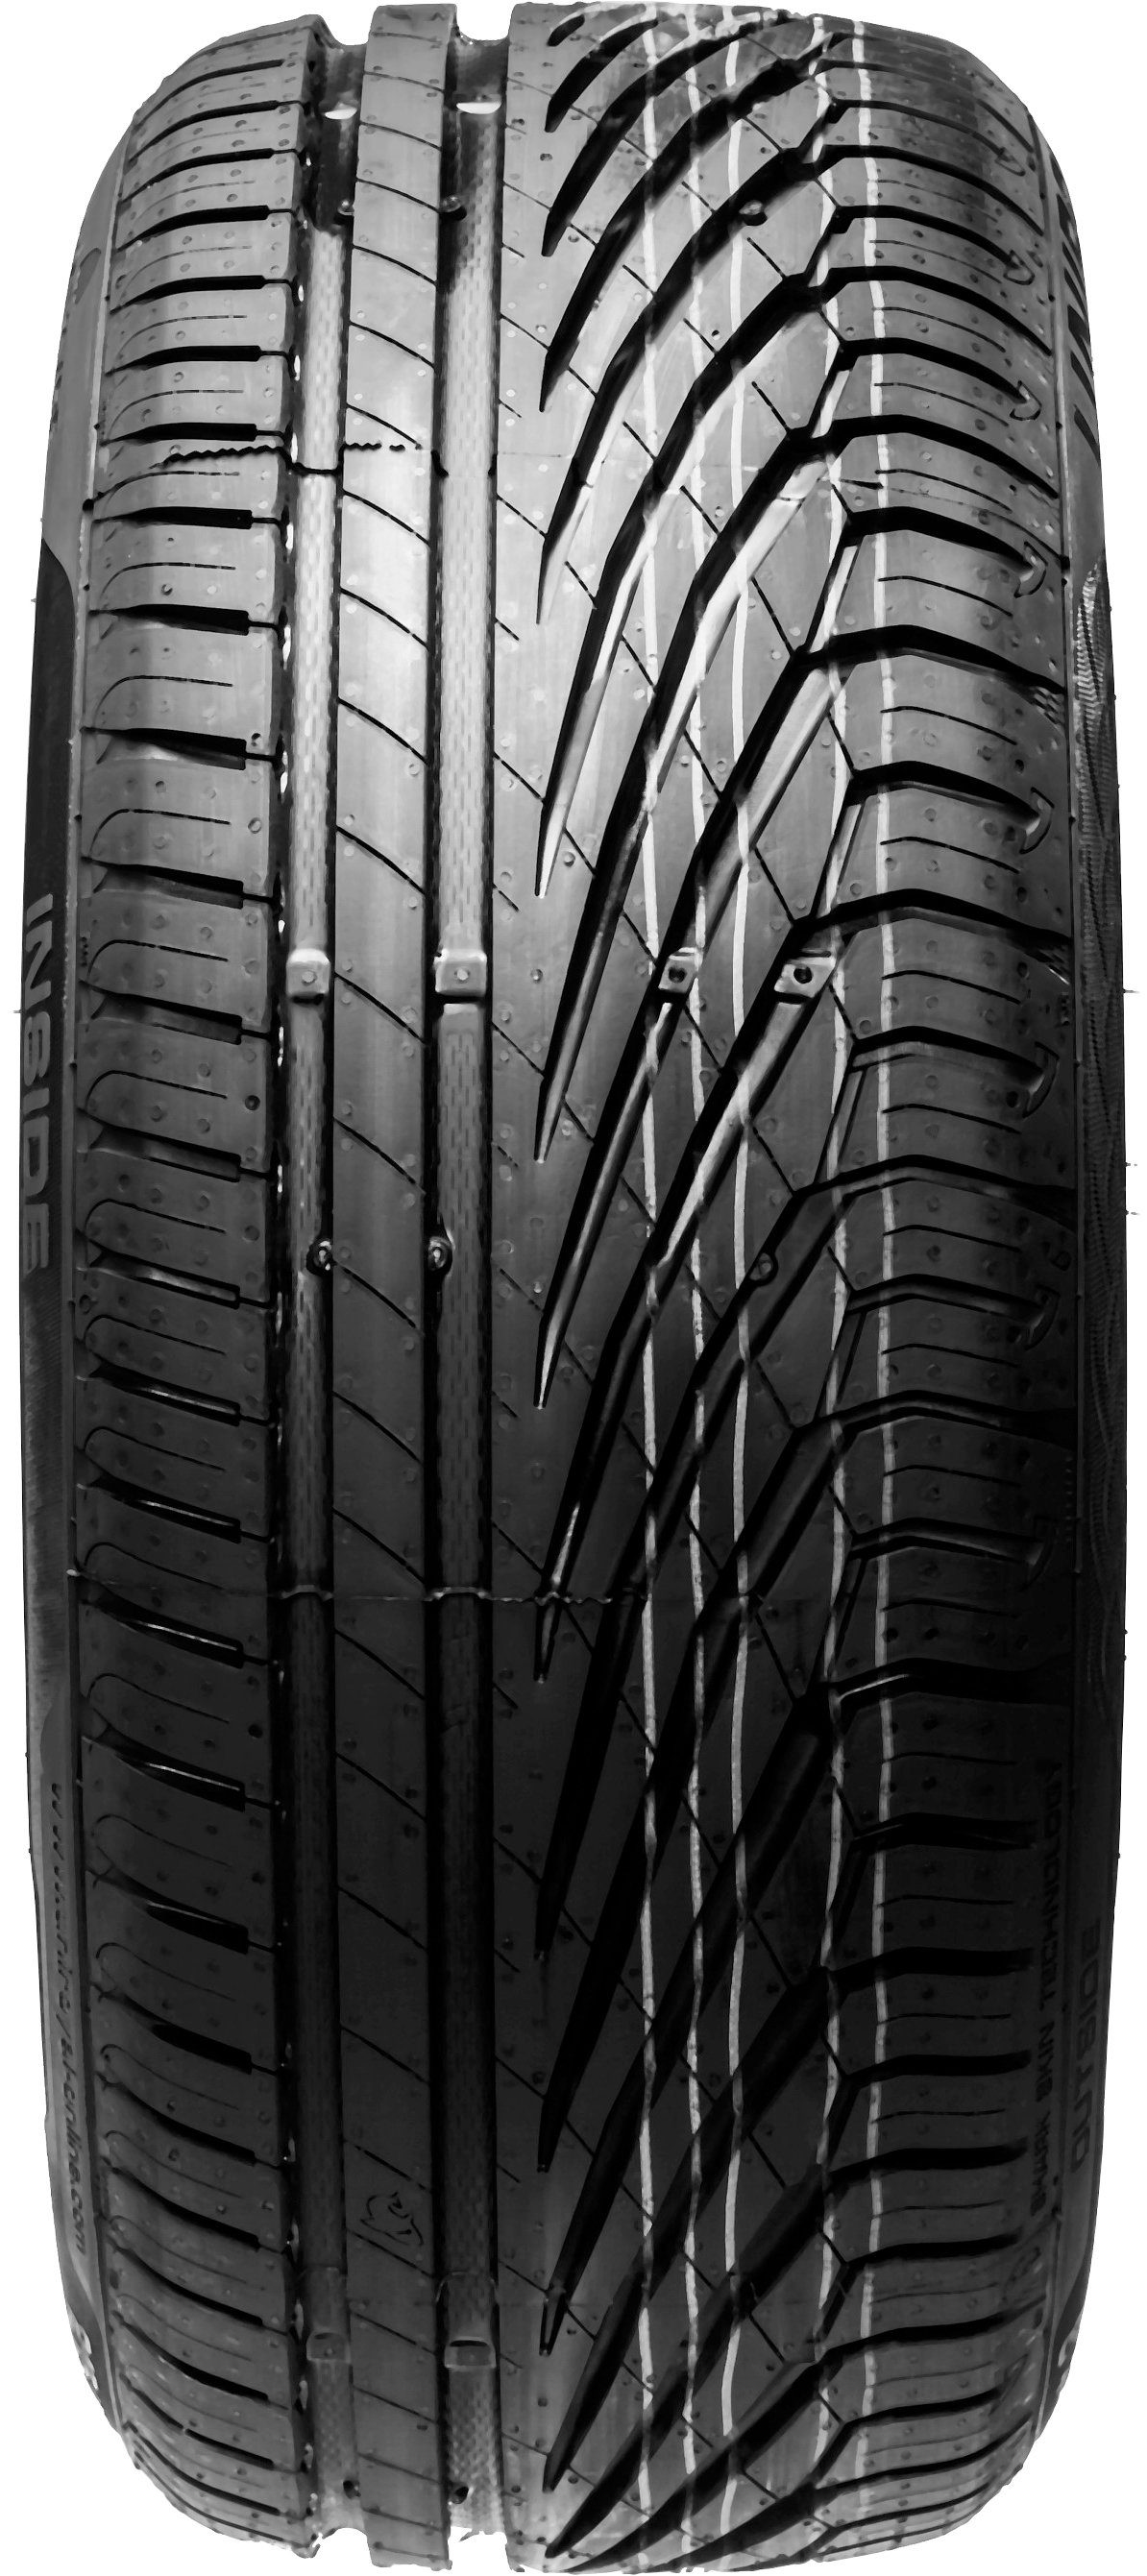 UNIROYAL Sommerreifen »RainSport 3«, 245/45 R17 95Y